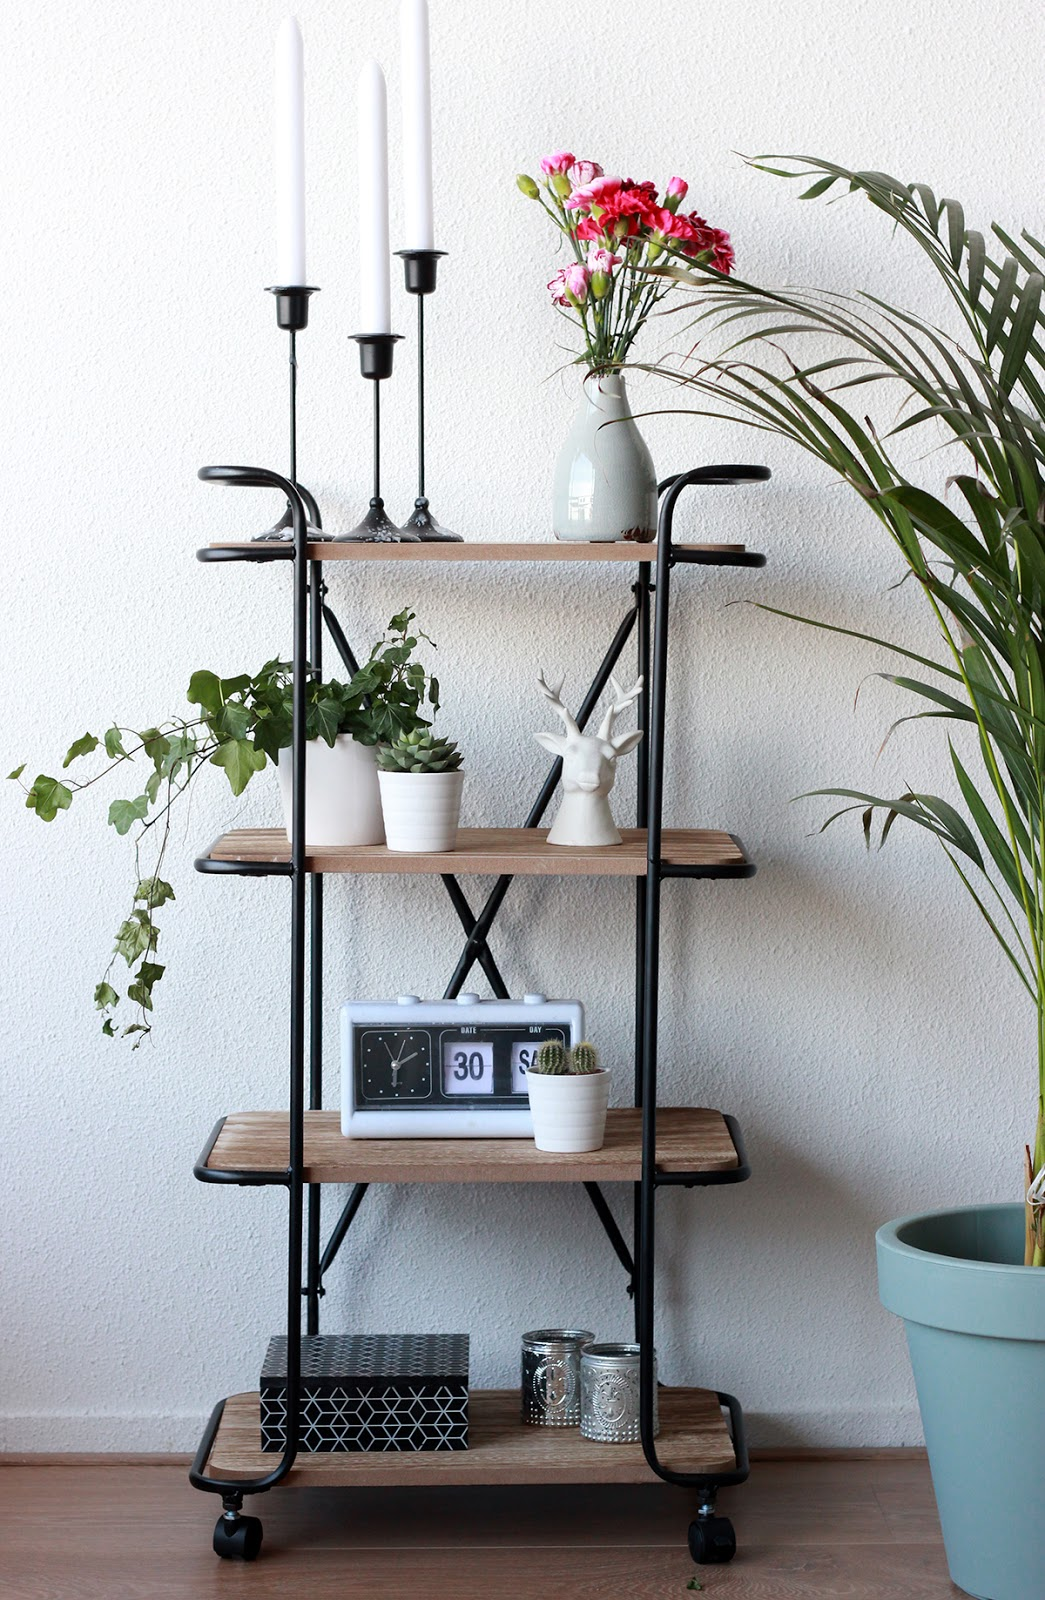 Draadmand Interieur Budgettip Action Trolley Voor 14 95 The Budget Life